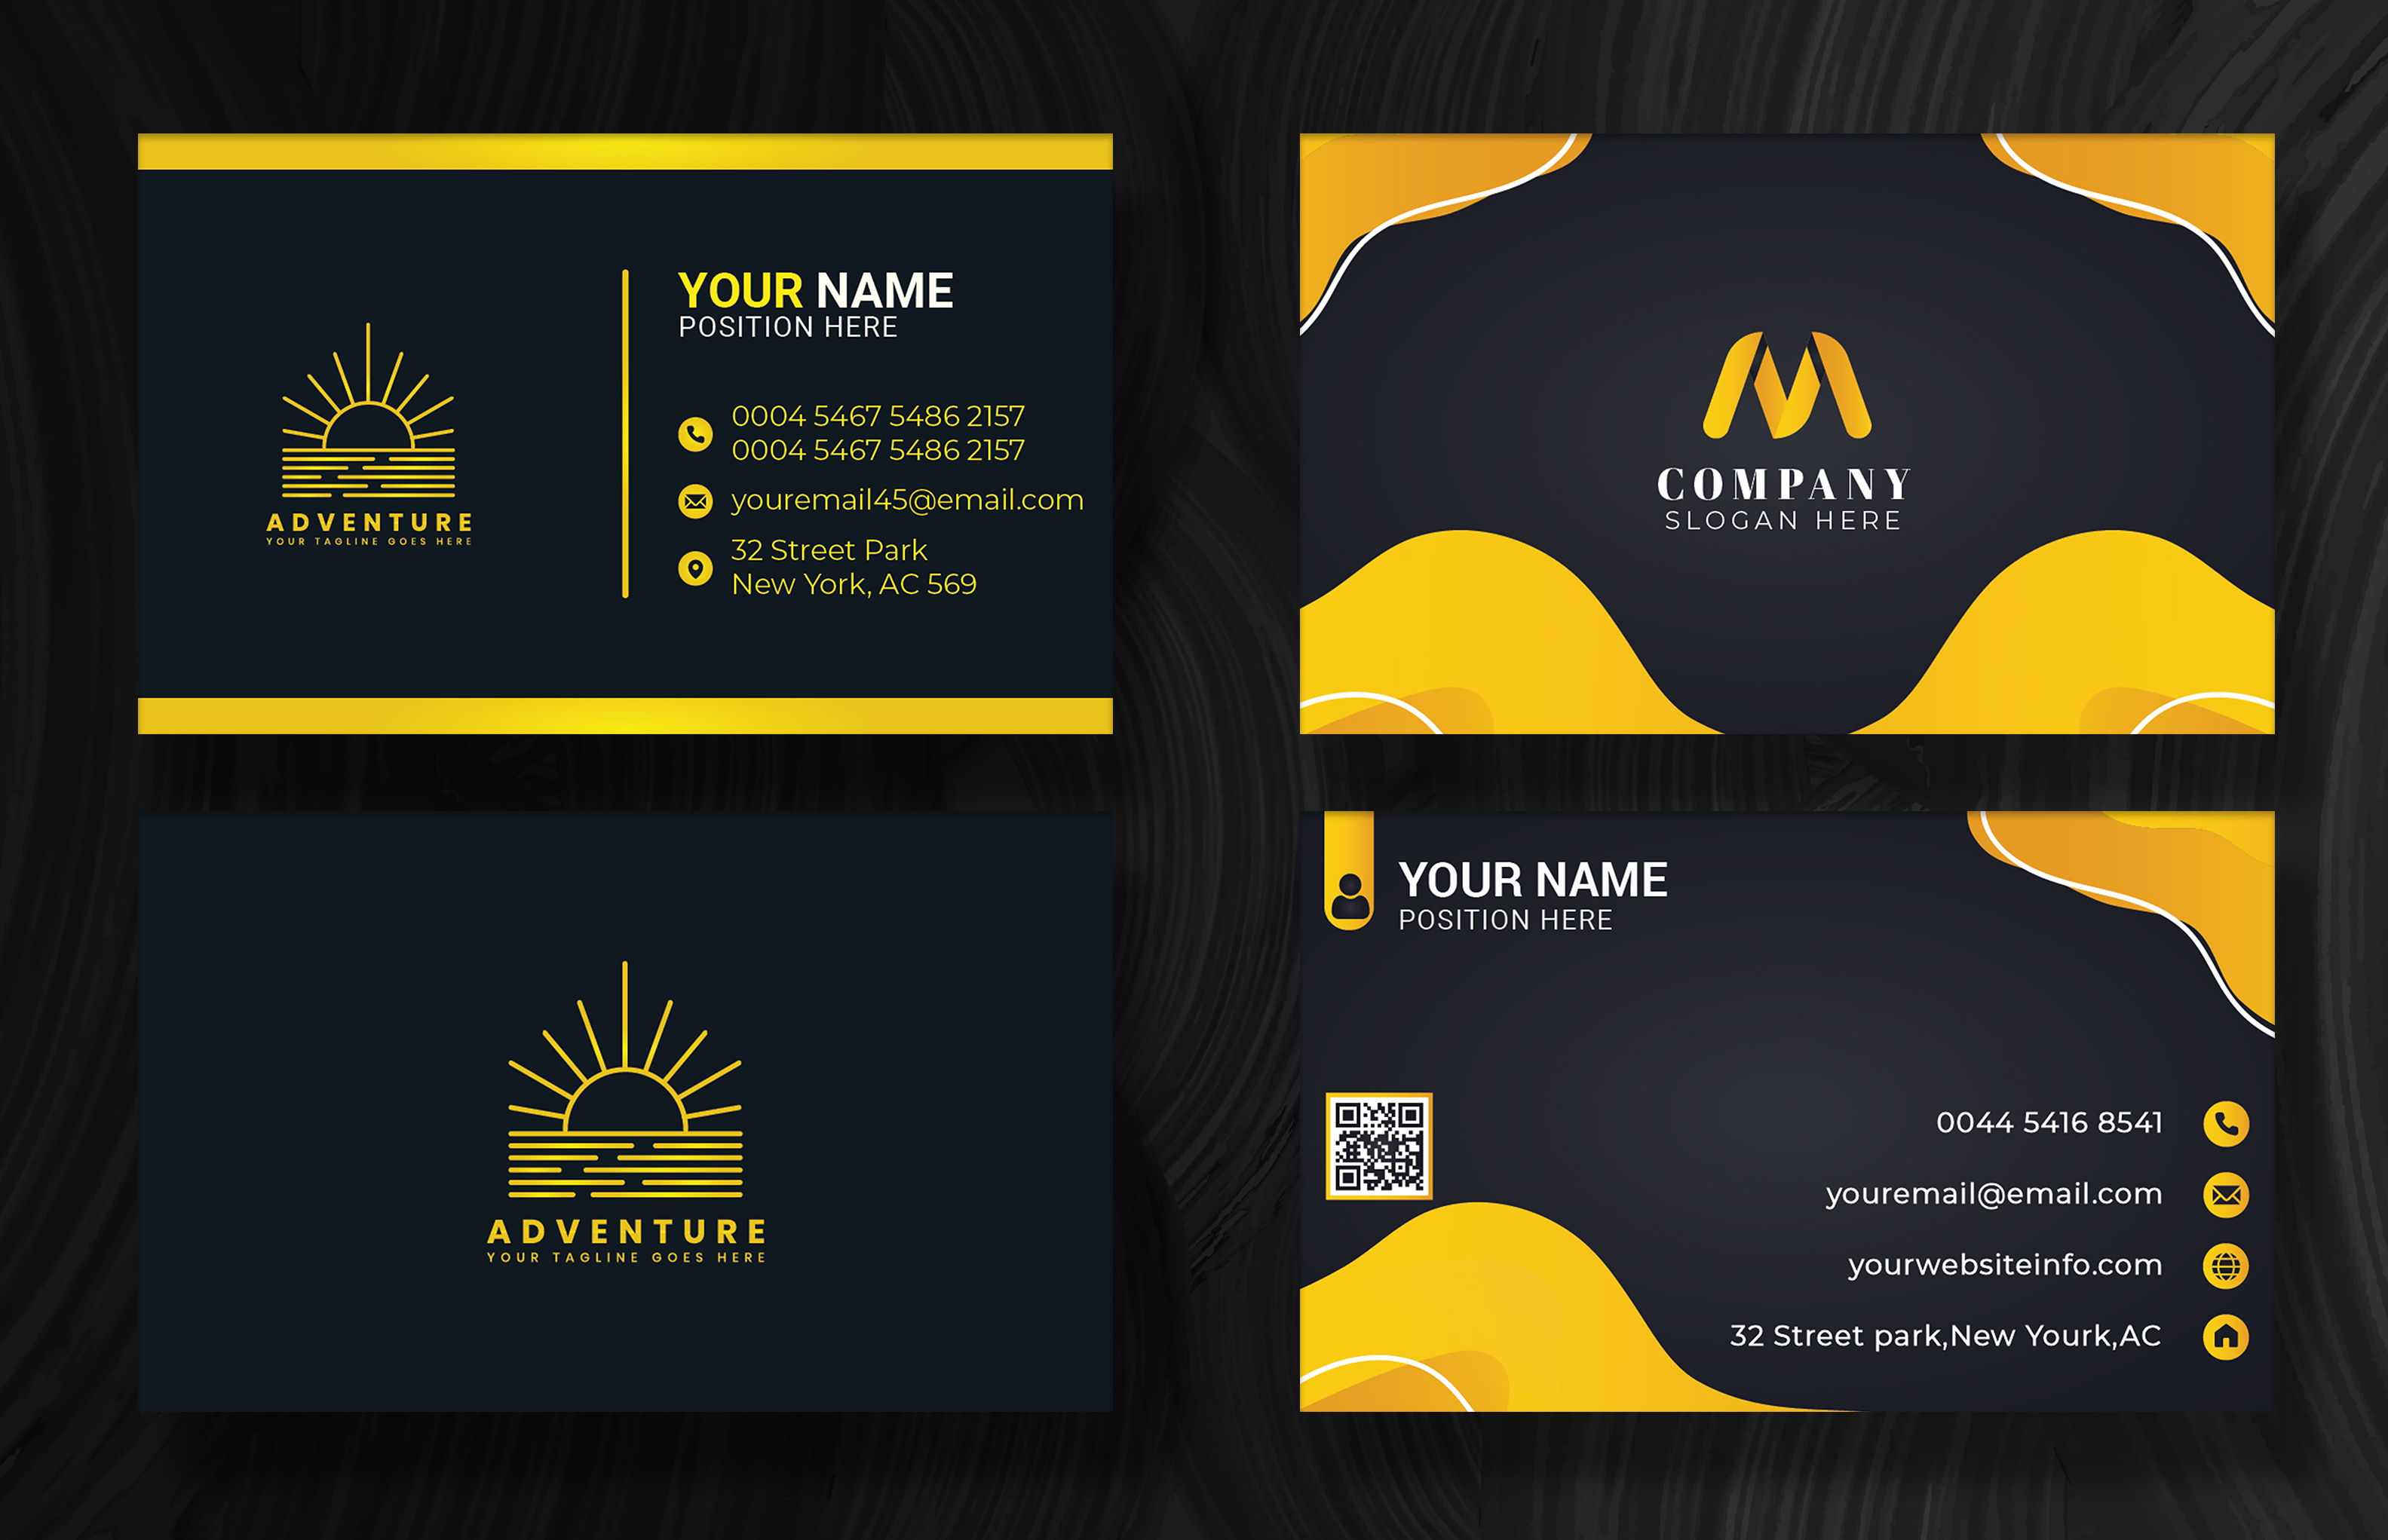 I will design professional,  unique business card with modern look